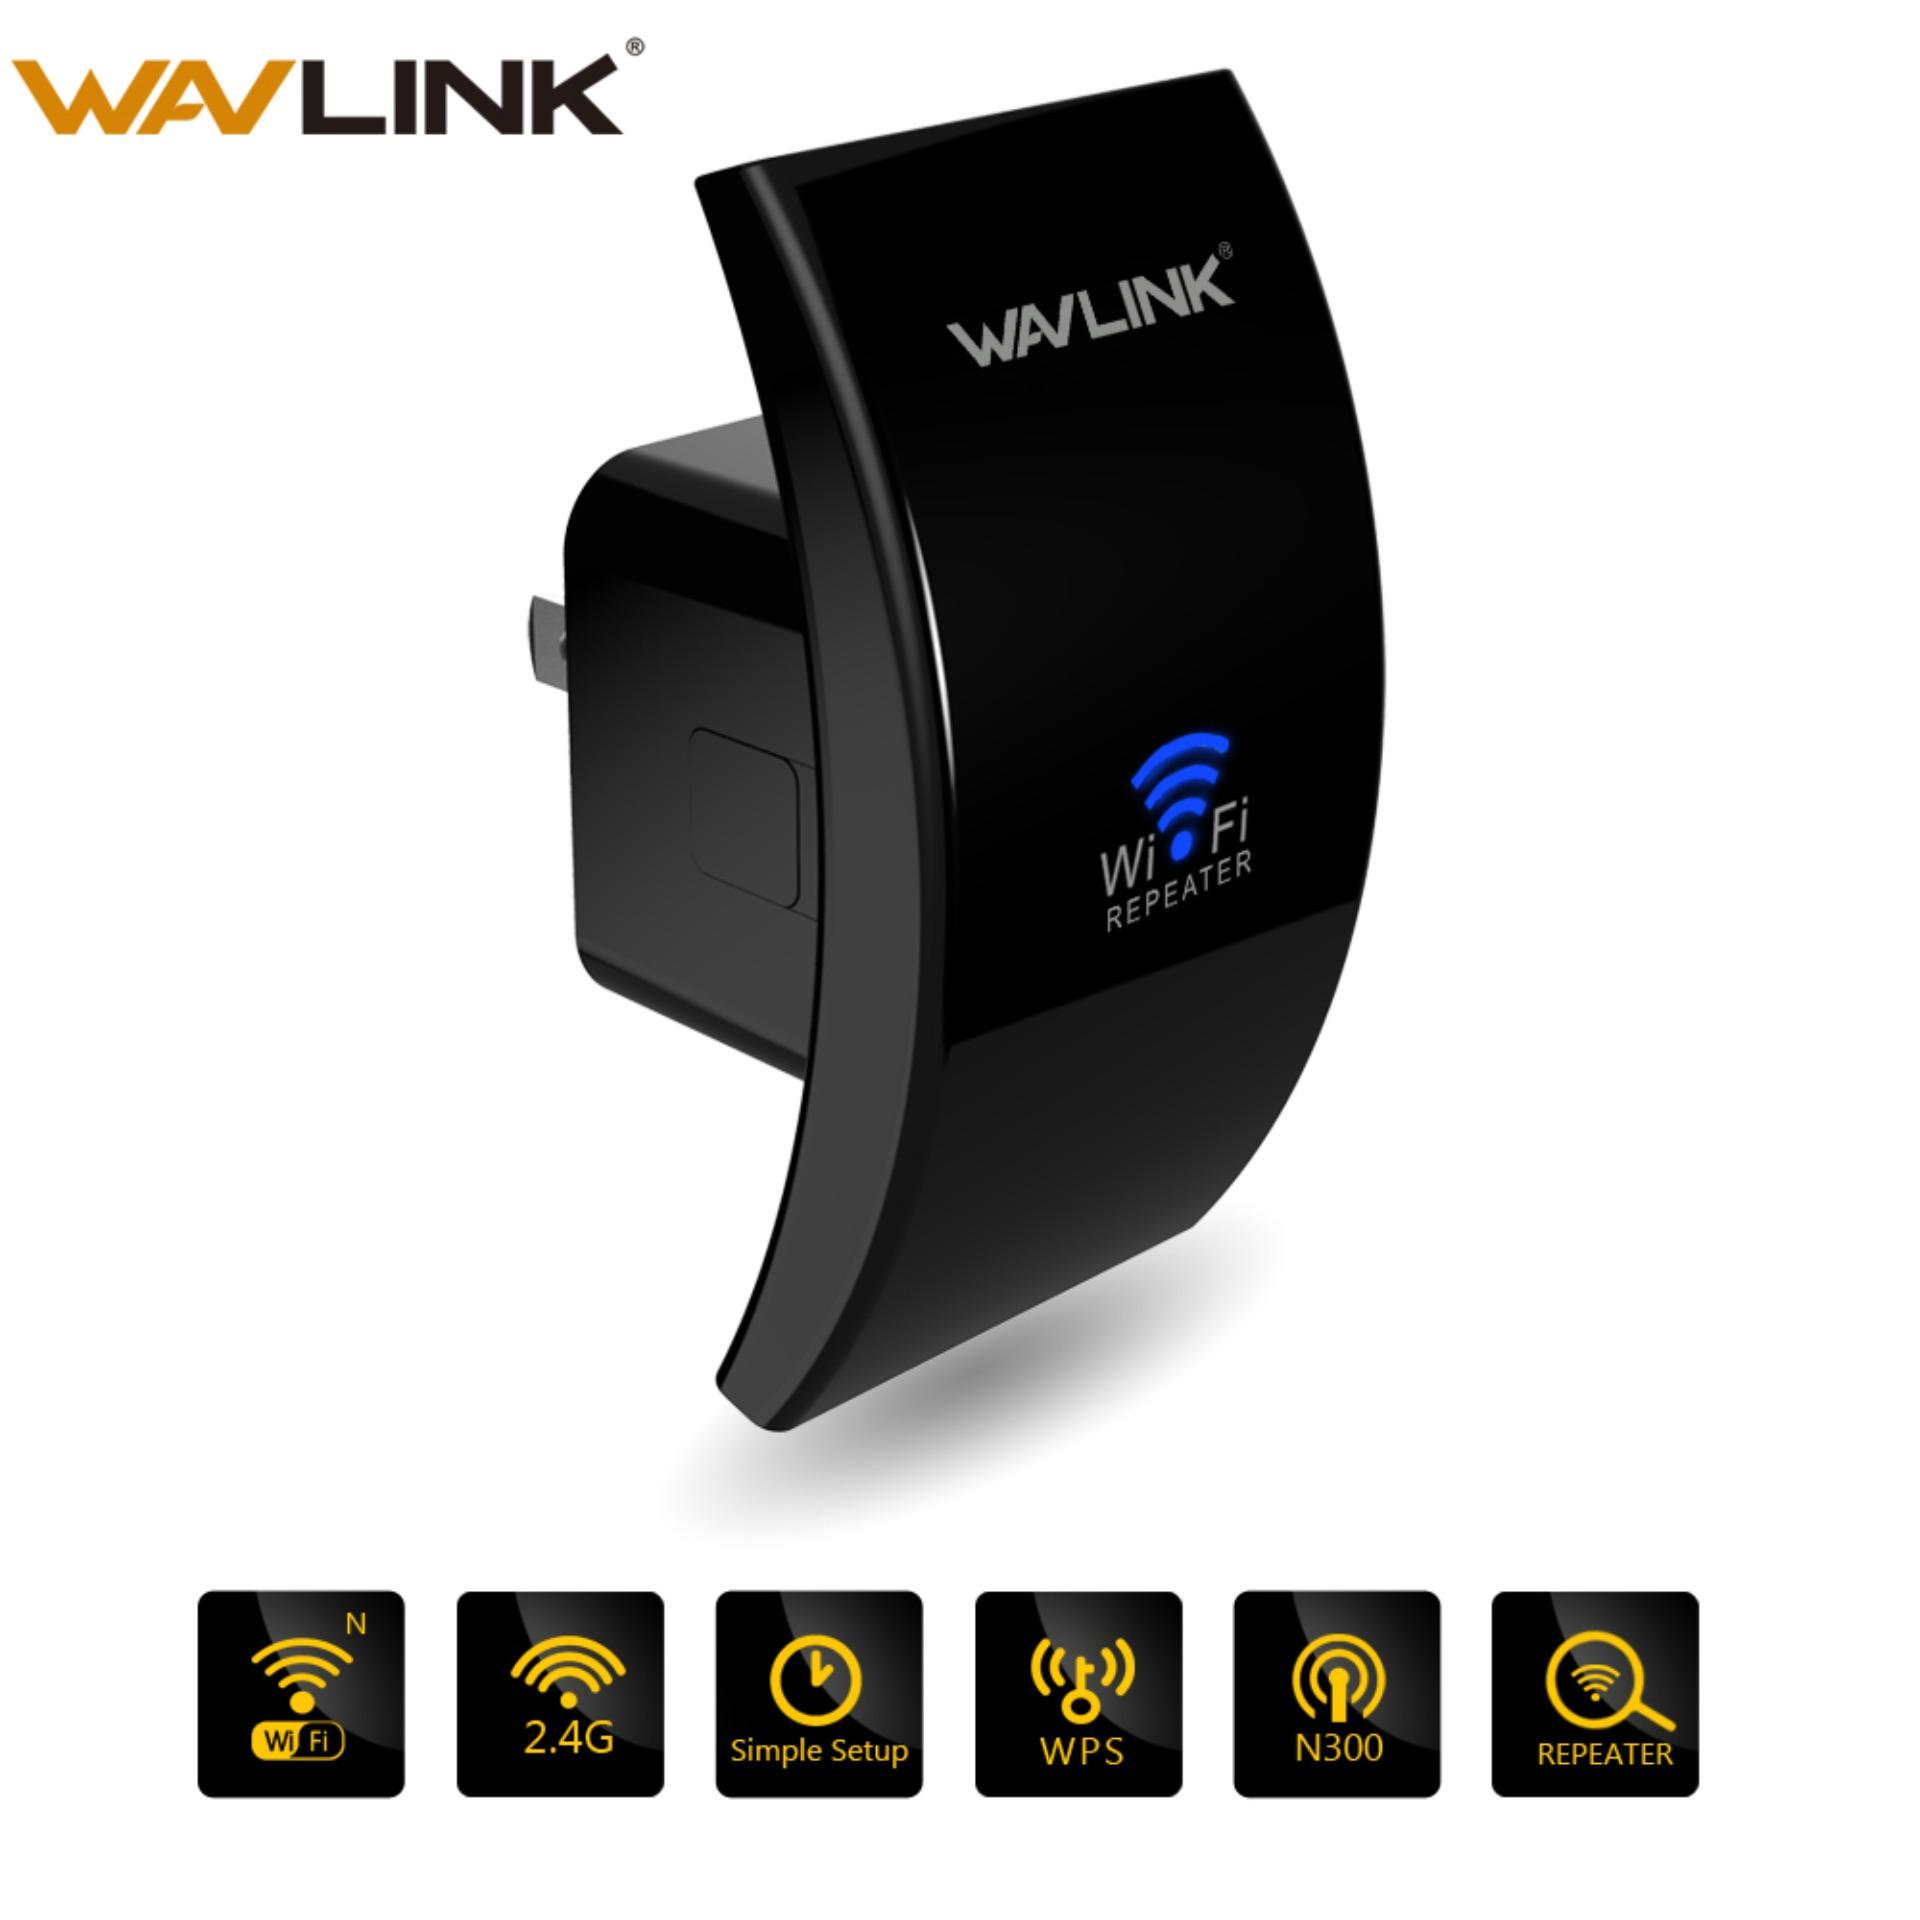 Wavlink N300 Mini Size WiFi Range Extender/ Repeater/Access Point/Wall Plug  Version With 3dBi Internal Antennas/WPS Protection-Black